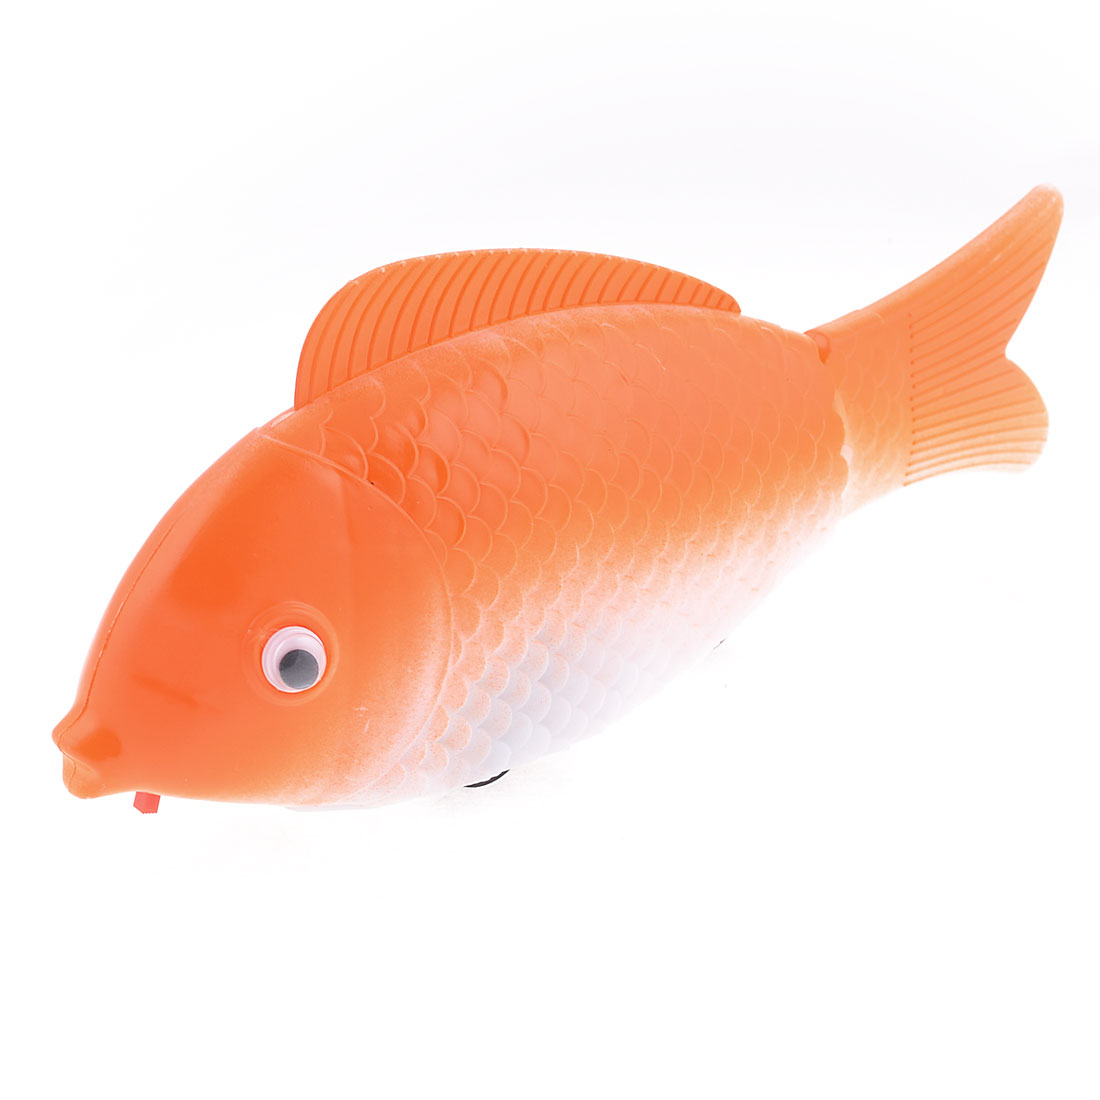 White Orange Fishtail Battery Powered Plastic Walking Music Fish Toy for Kid